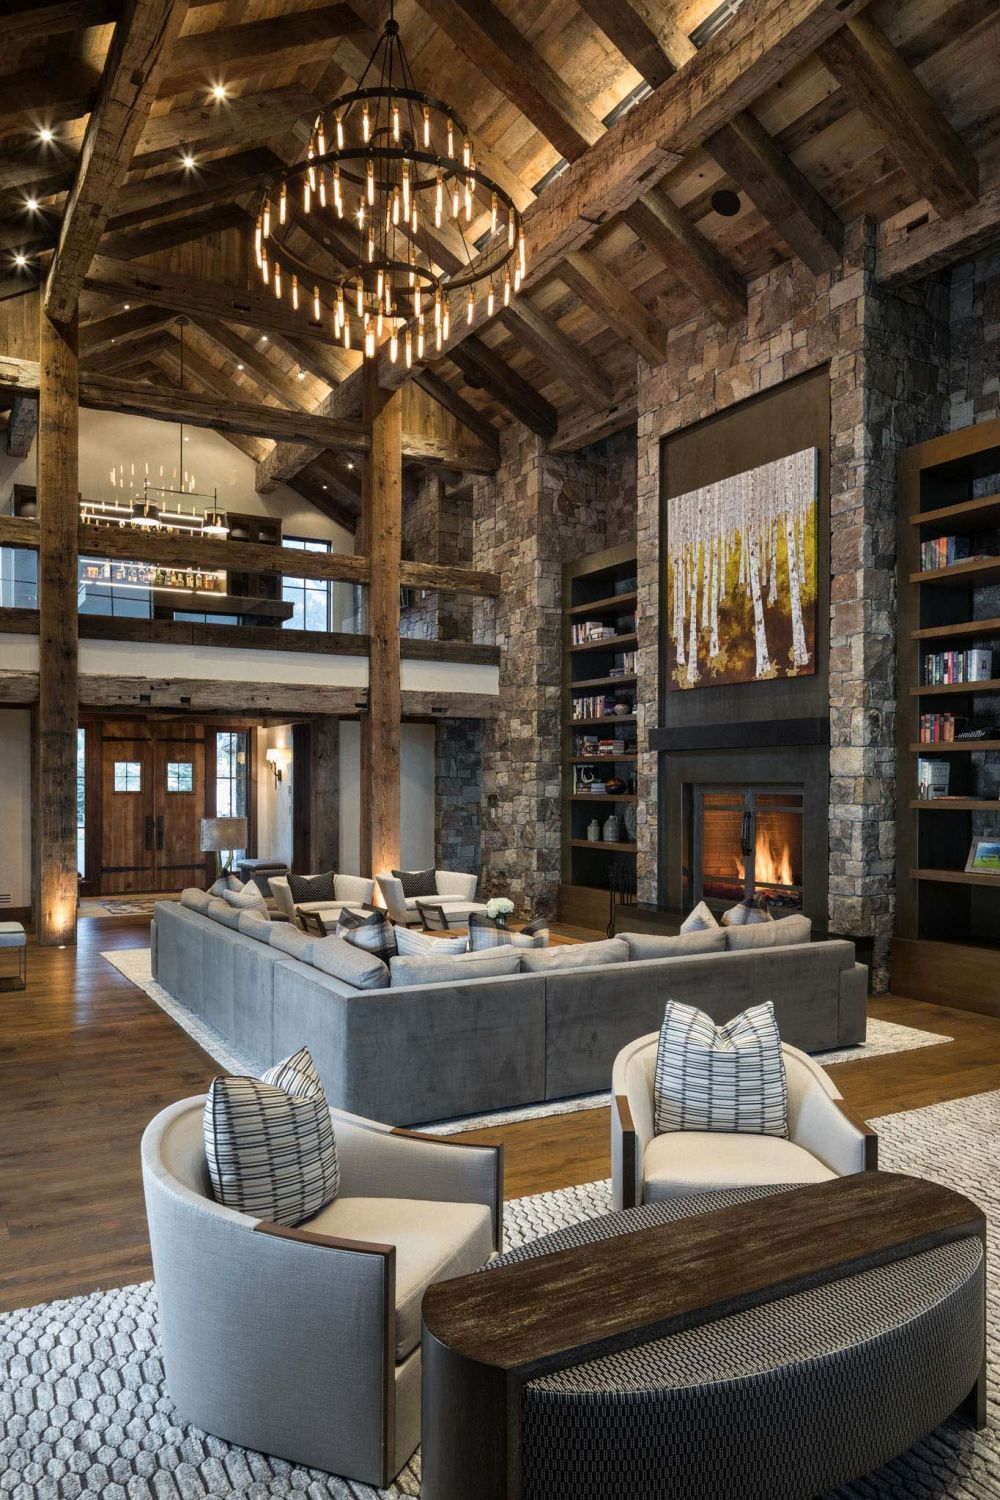 Modern Cozy Mountain Home Design Ideas 18: Rustic Living Room Decor Ideas Inspired By Cozy Mountain Cabins